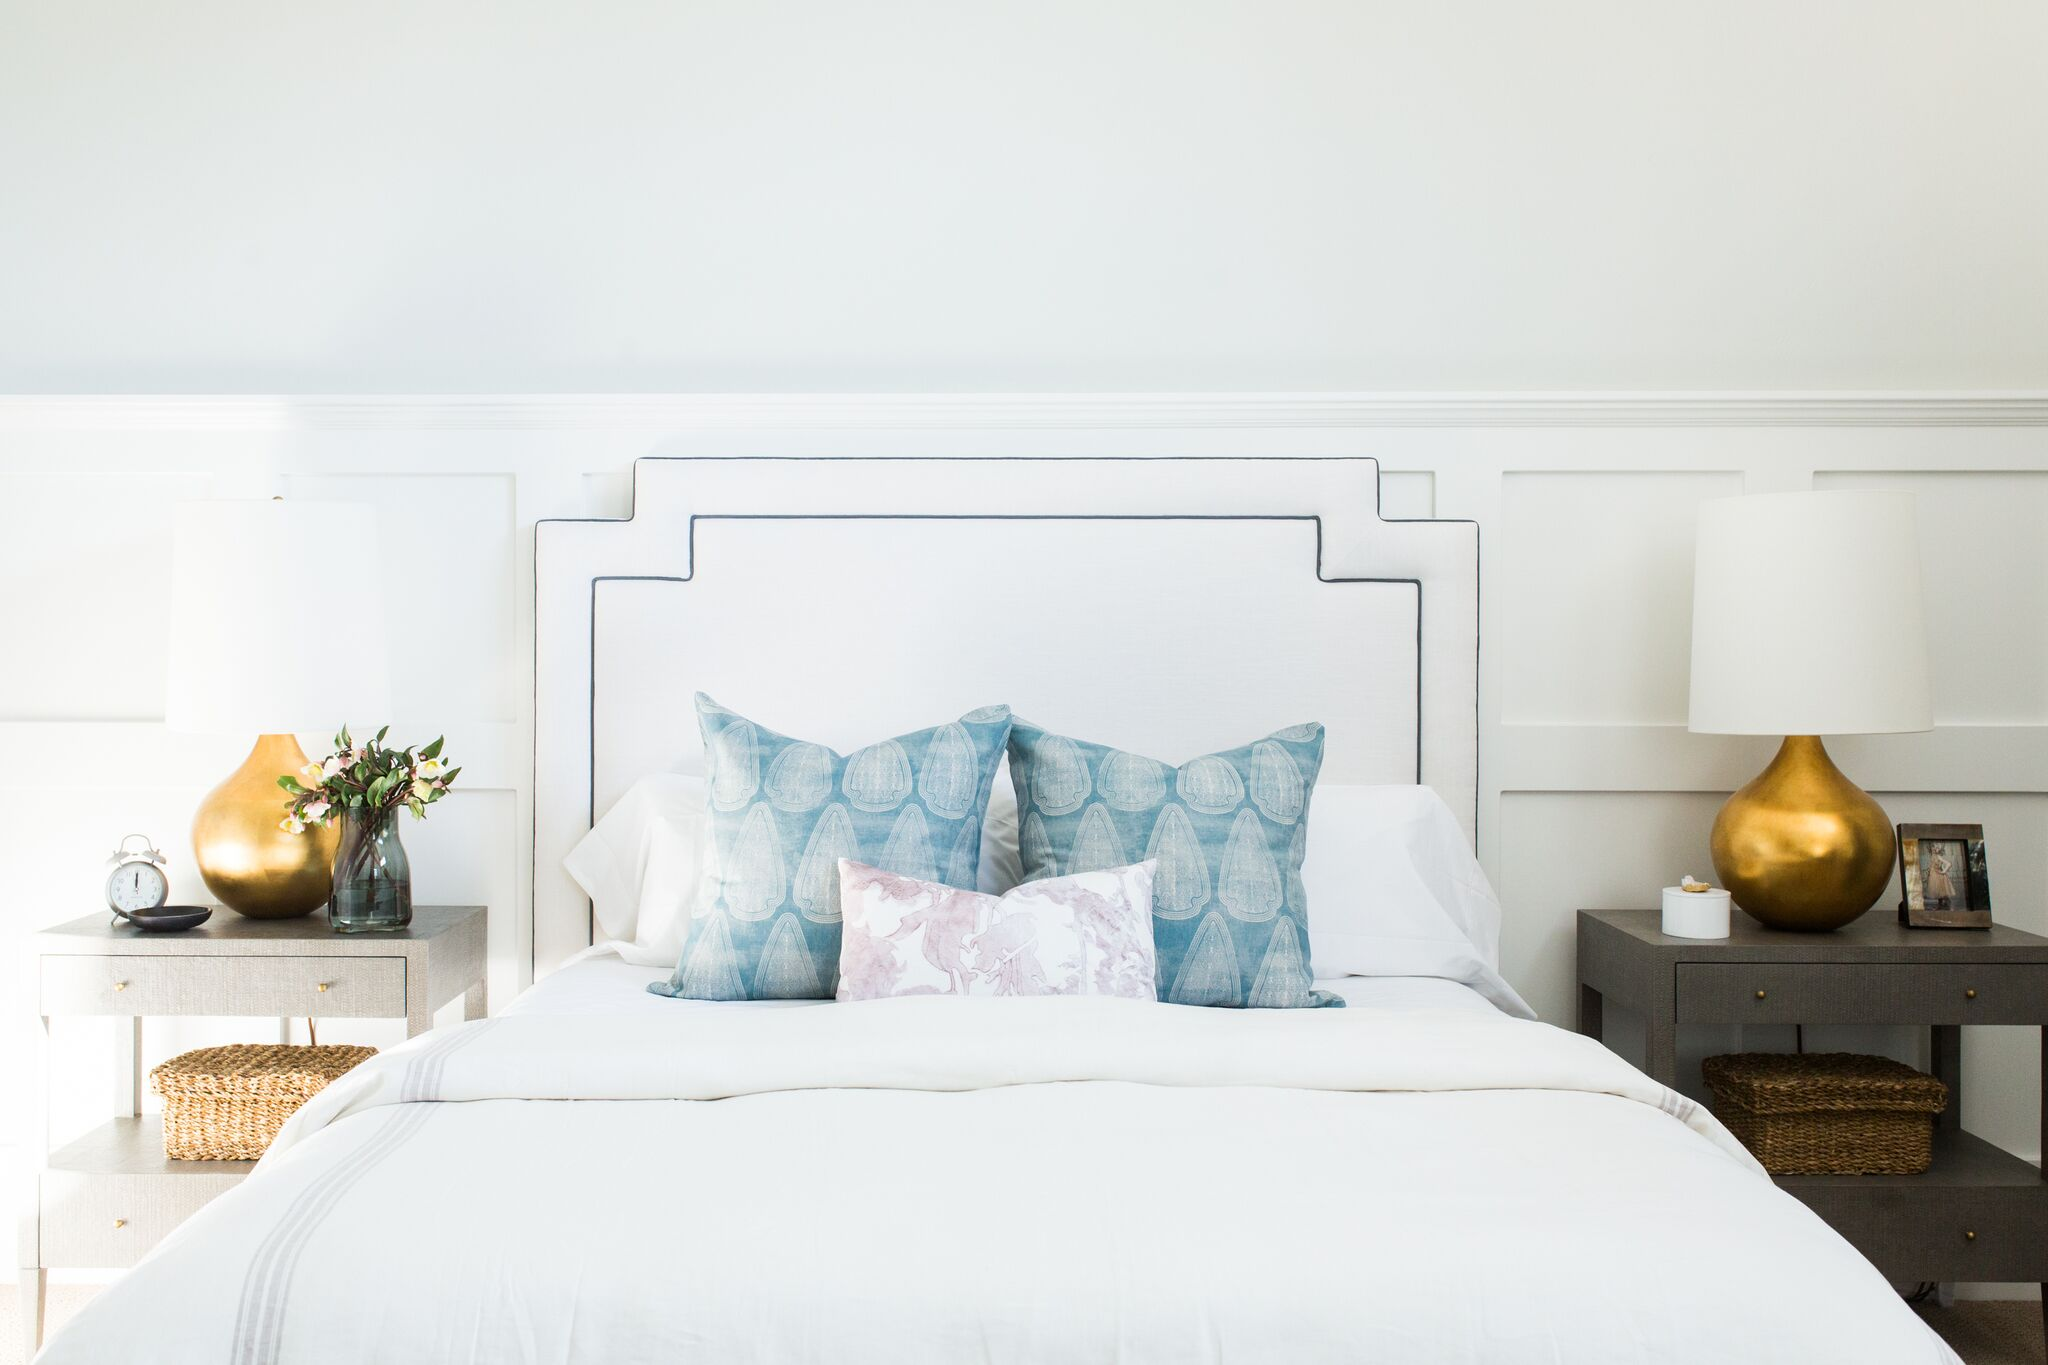 White master bed with blue decorative pillows